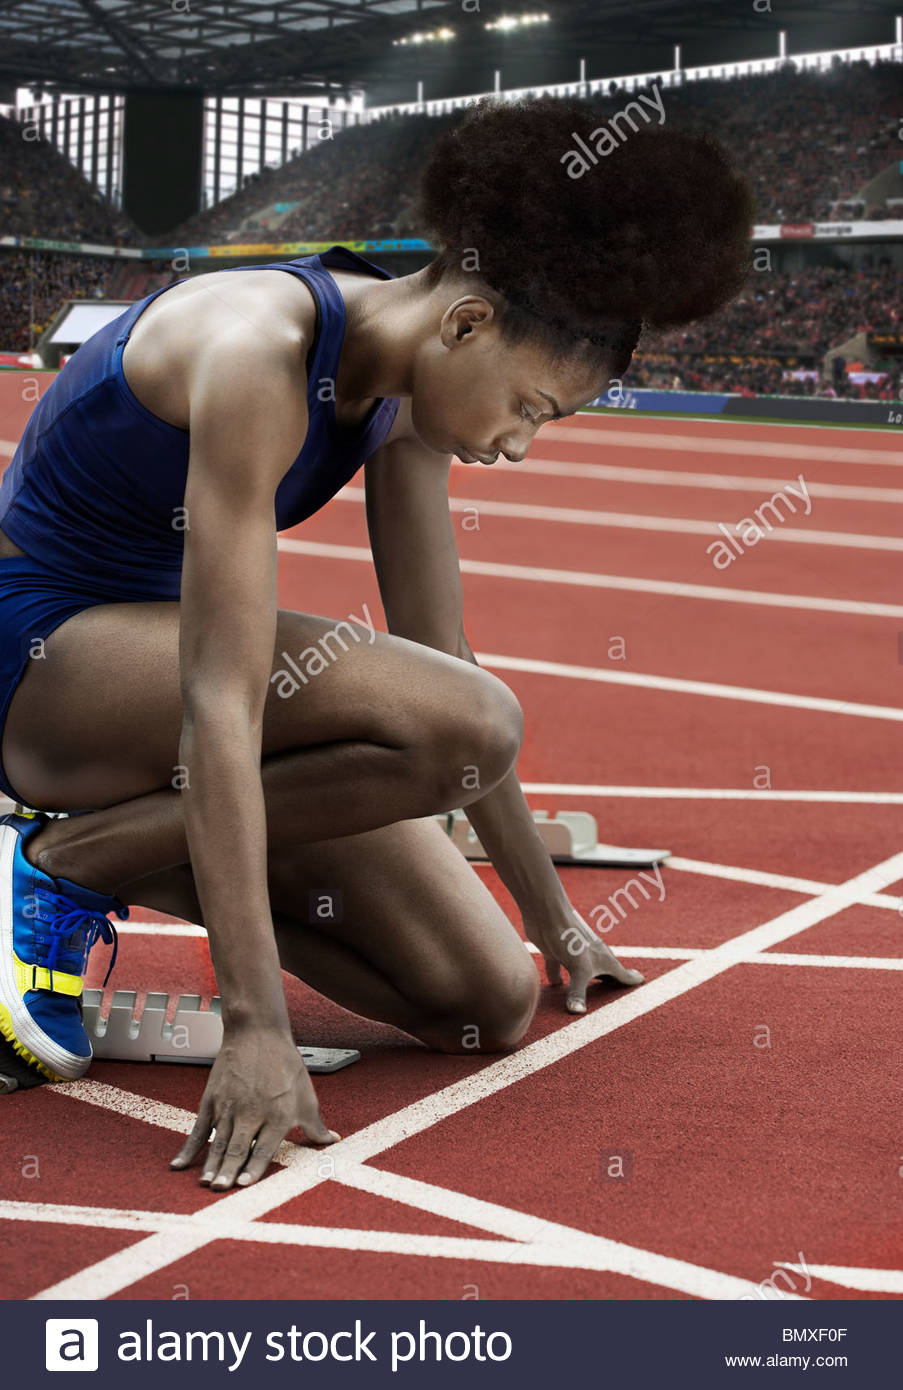 Runner at starting line in stadium - Stock Image